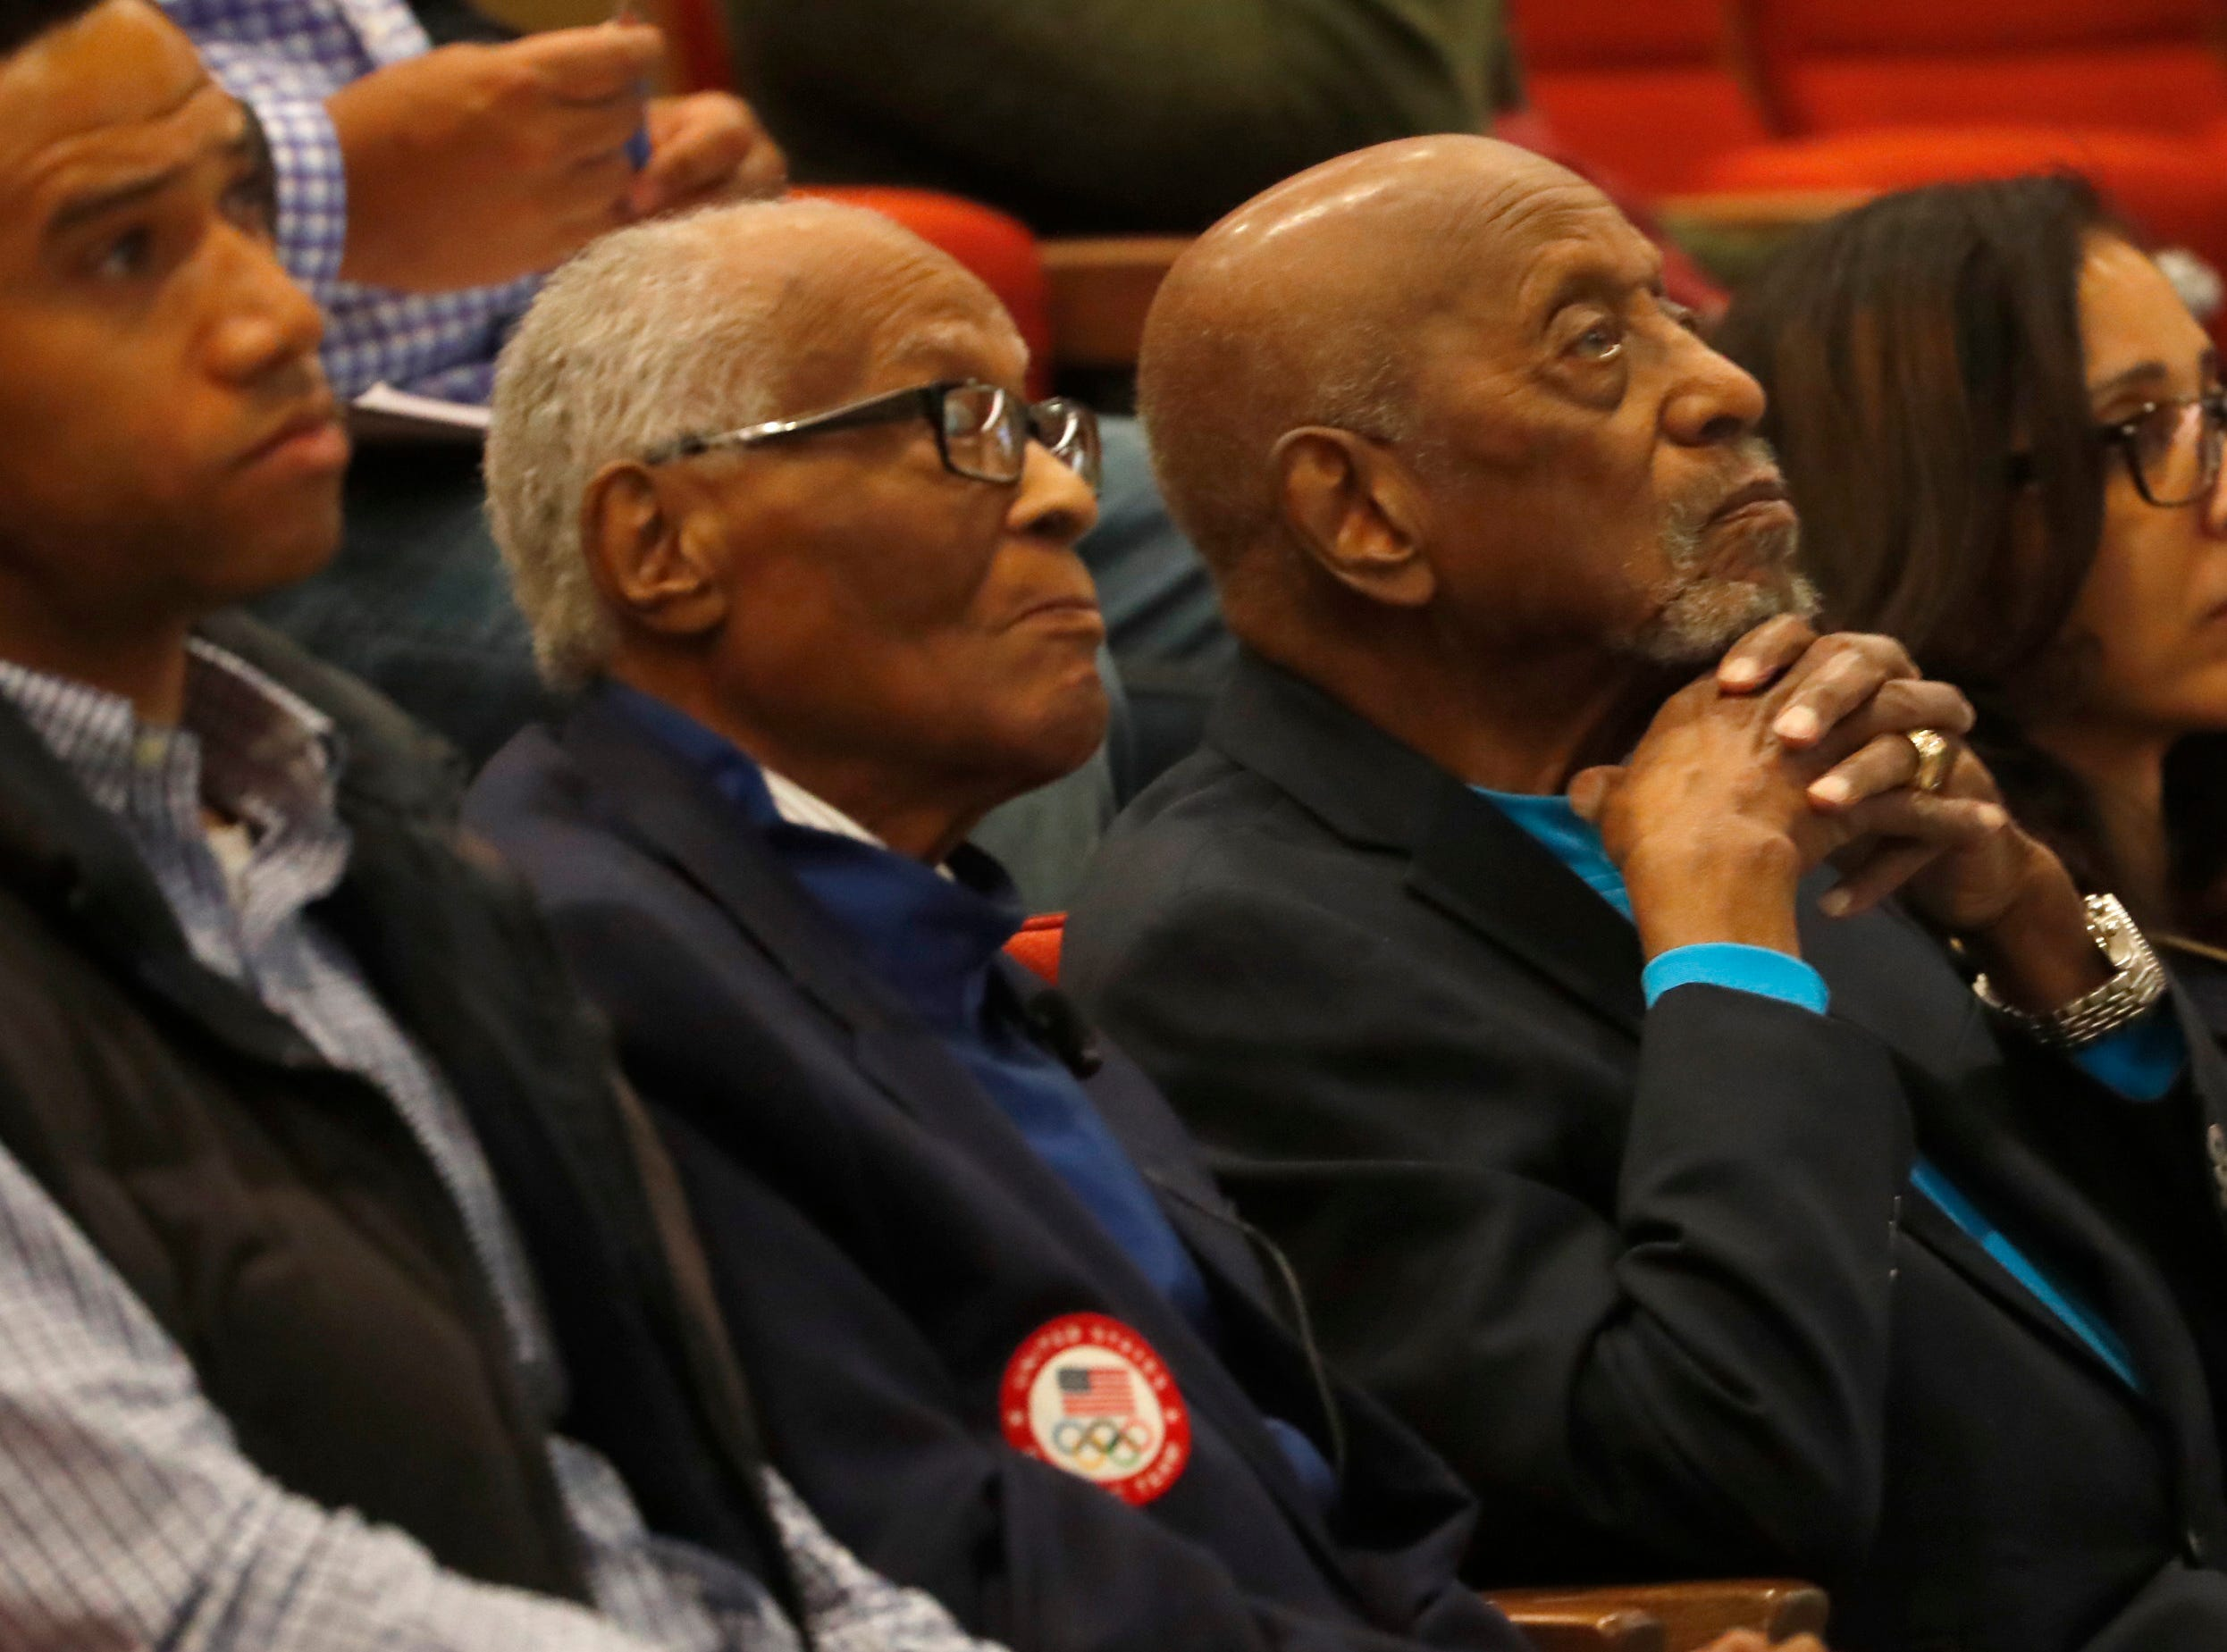 Herbert Douglas (center), the oldest living black Olympic medalist, Harrison Dillard (center-right) watch a documentary screening of The Renaissance Period of the African American at Beus Center for Law and Society in Phoenix, Ariz. on February 11, 2019.